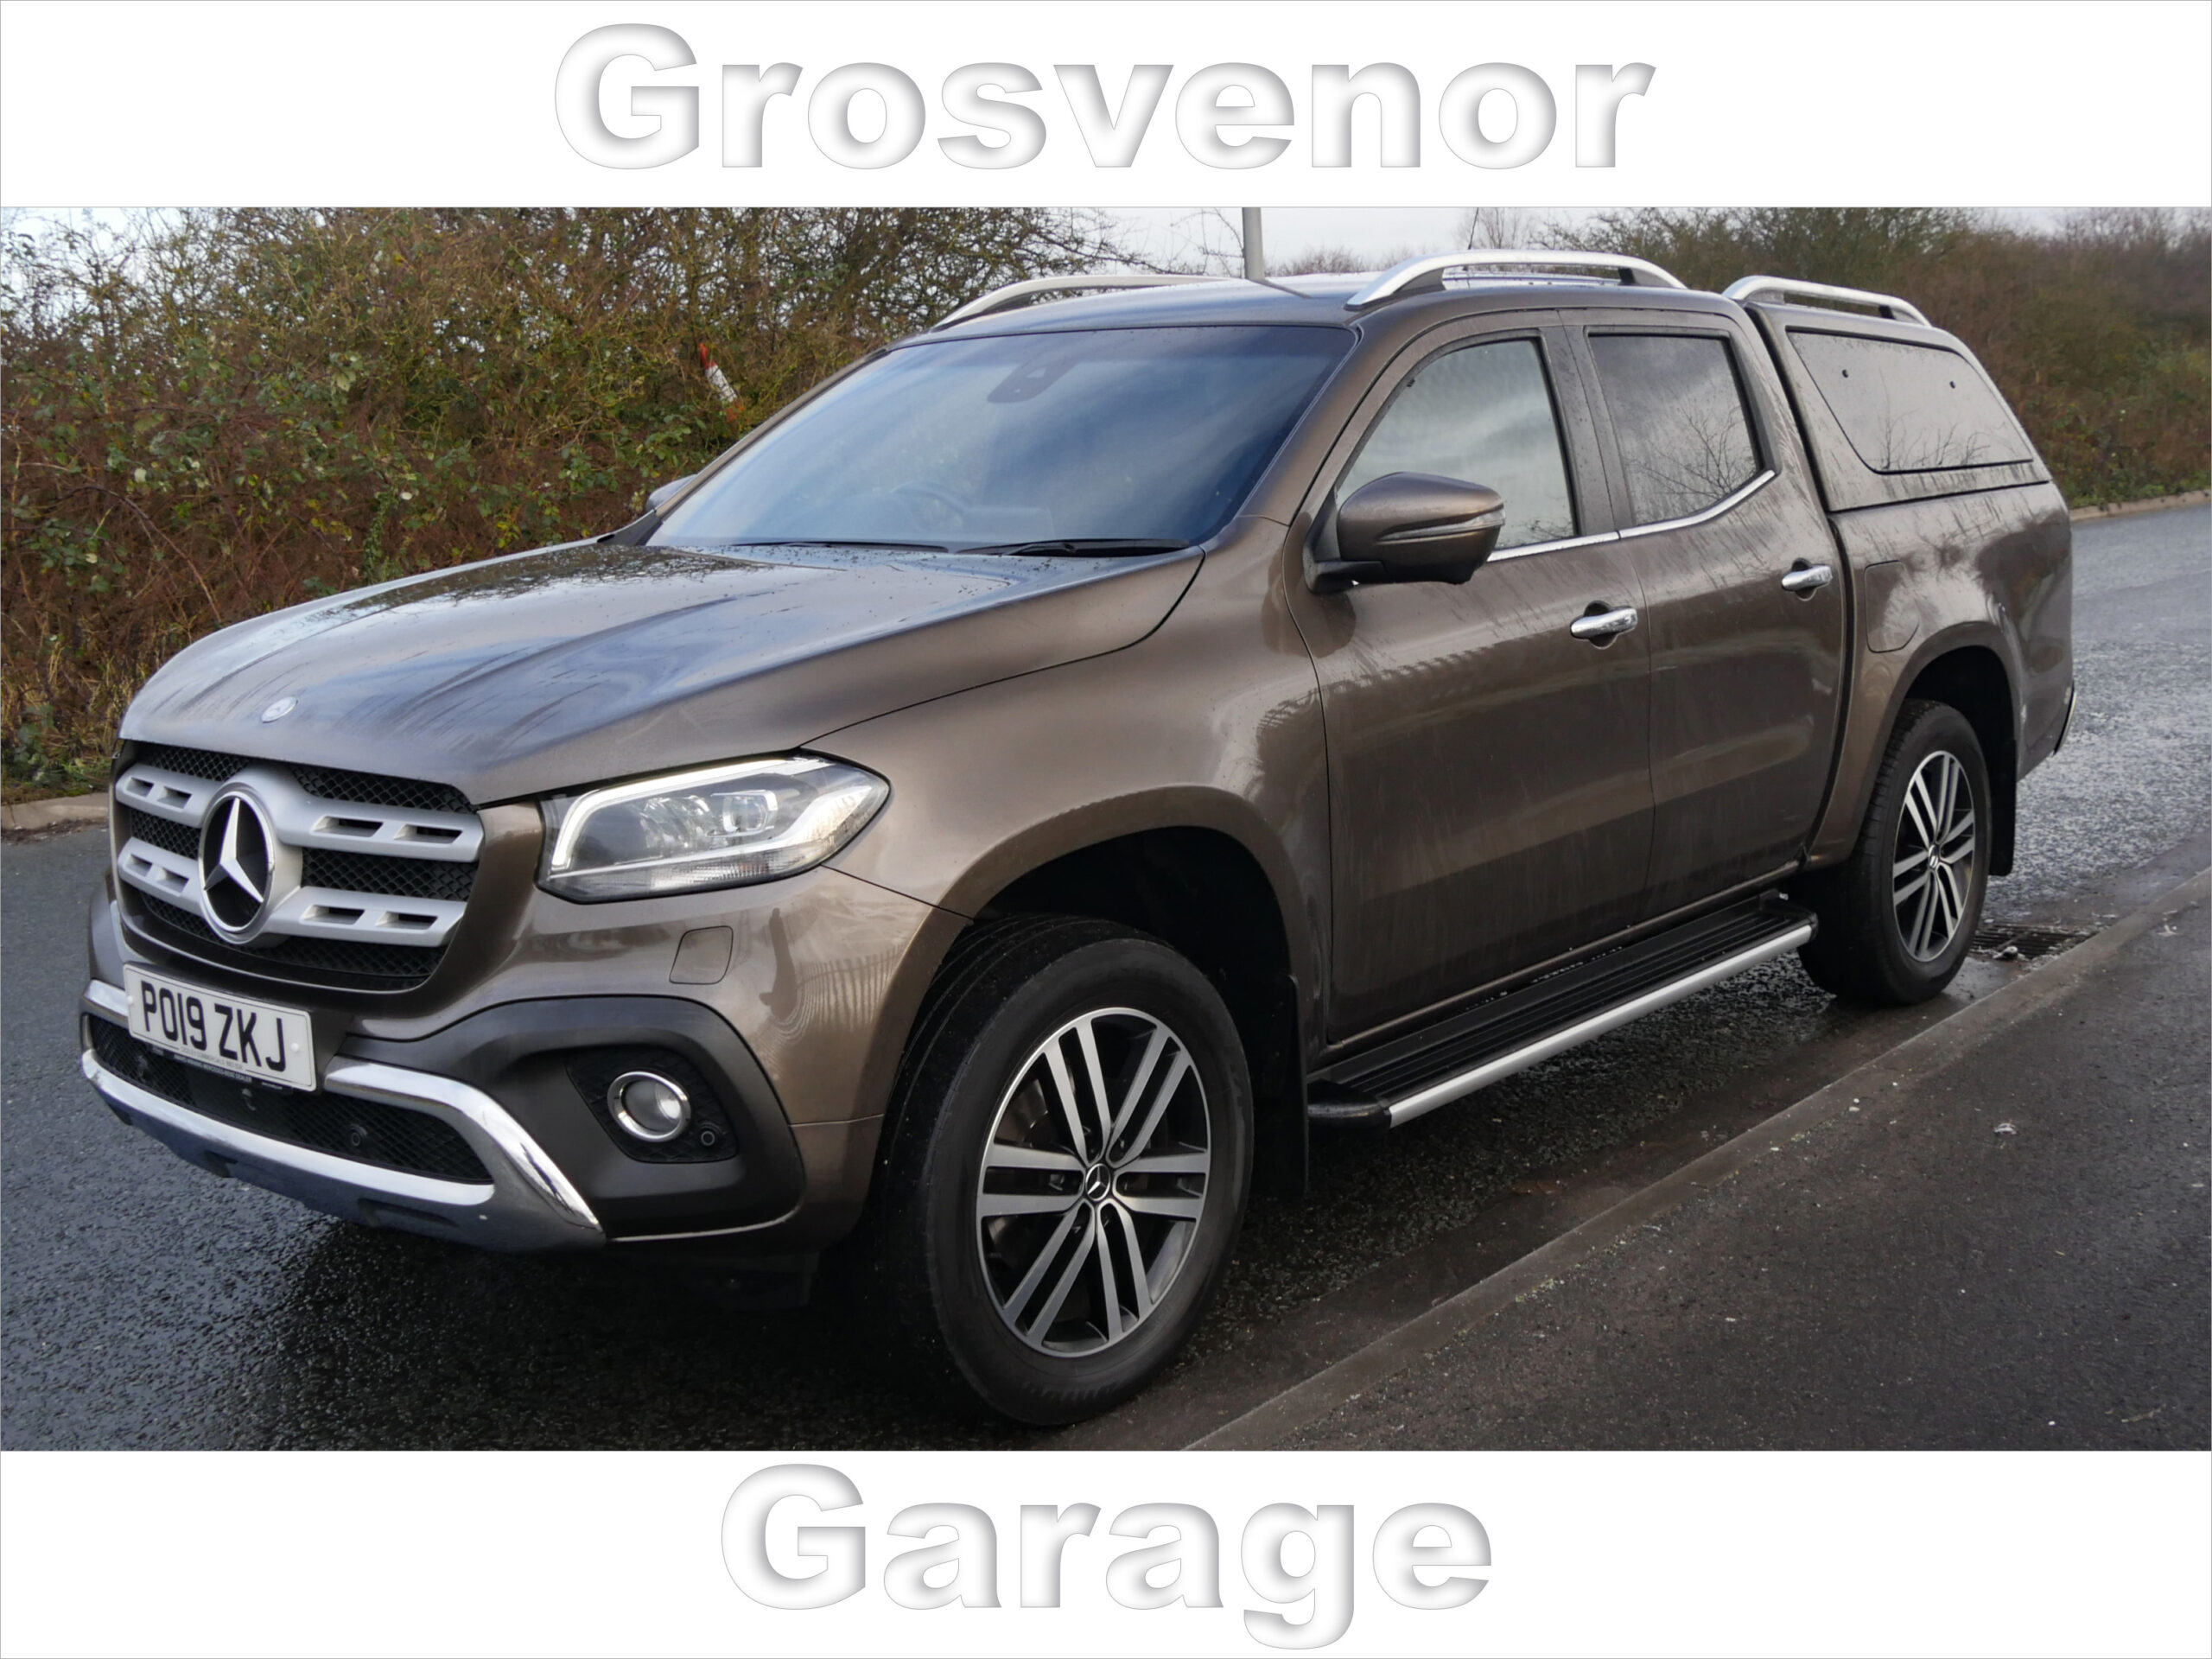 2019 (19) MERCEDES-BENZ X-CLASS X250 D 4MATIC POWER 2.3 X250 D